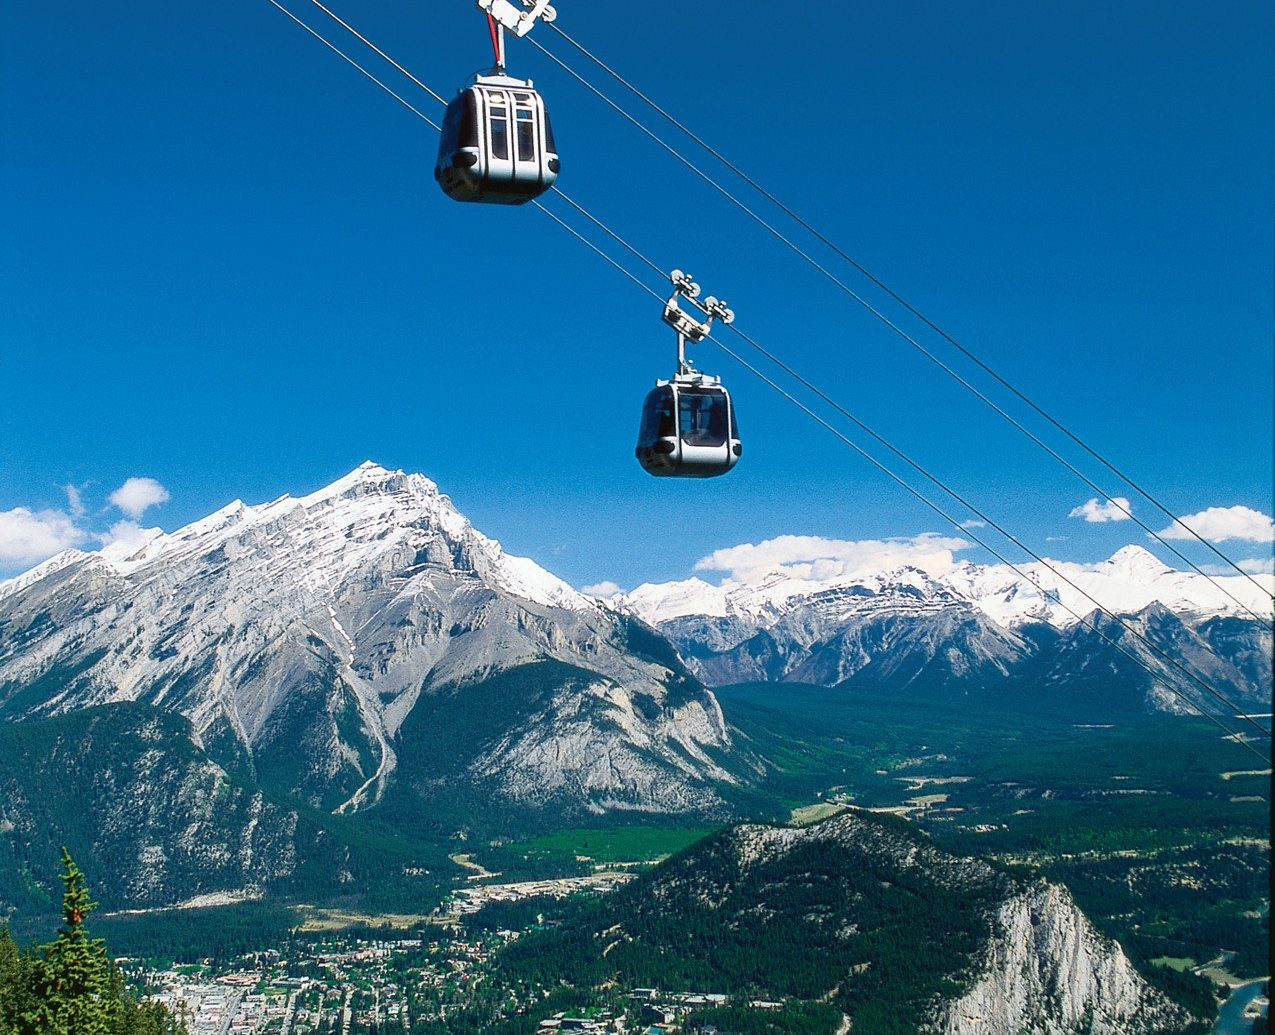 Mountains National Parks Natural wonders Nature Outdoor Activities Outdoors Scenic views Trip Ideas sky outdoor mountain mountainous landforms cable car mountain range transport alps vehicle